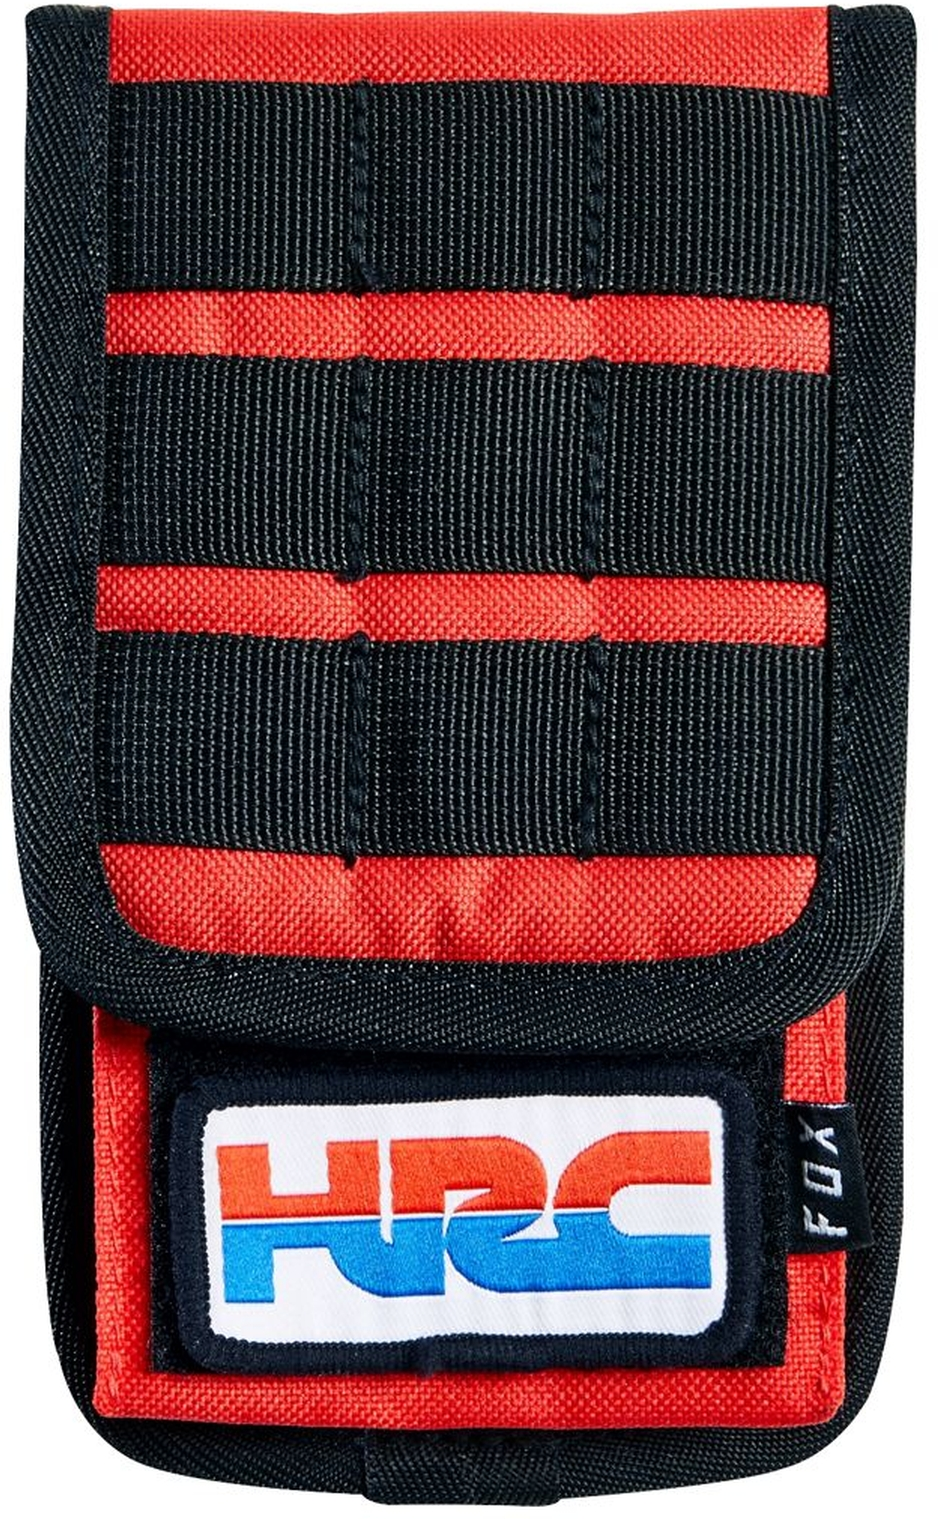 REDPLATE HRC TOOL POUCH